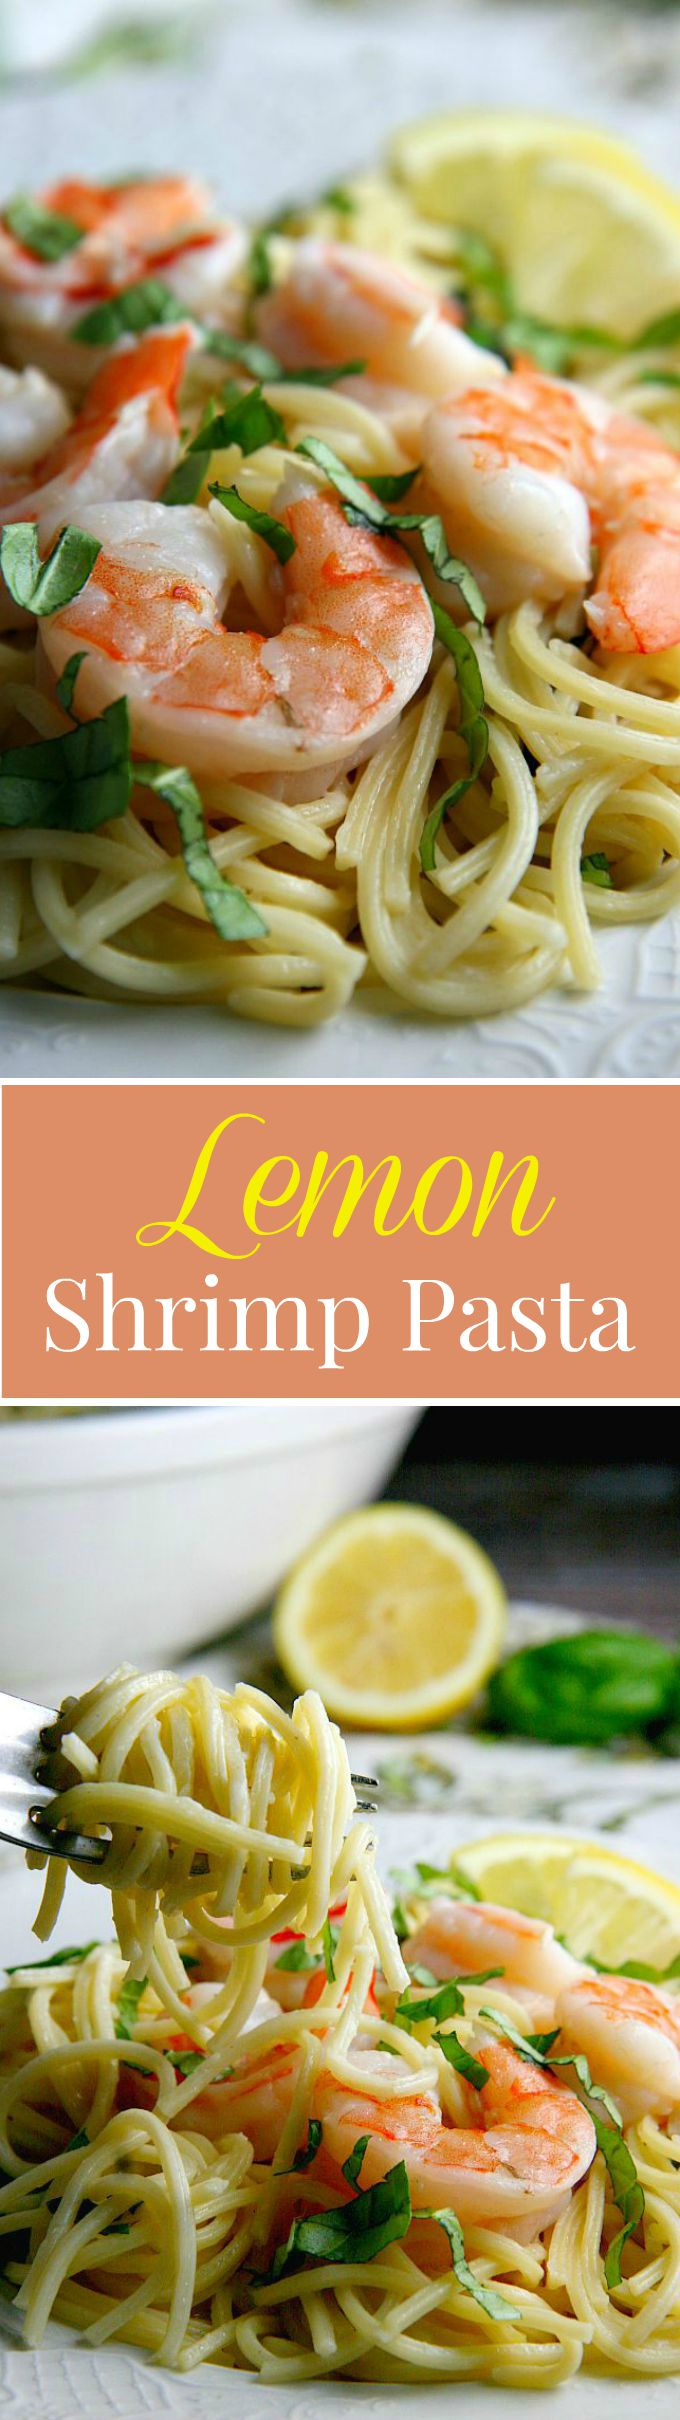 Lemon Shrimp Pasta...15 mins, one pot meal...perfect dinner recipe for busy families on the go!